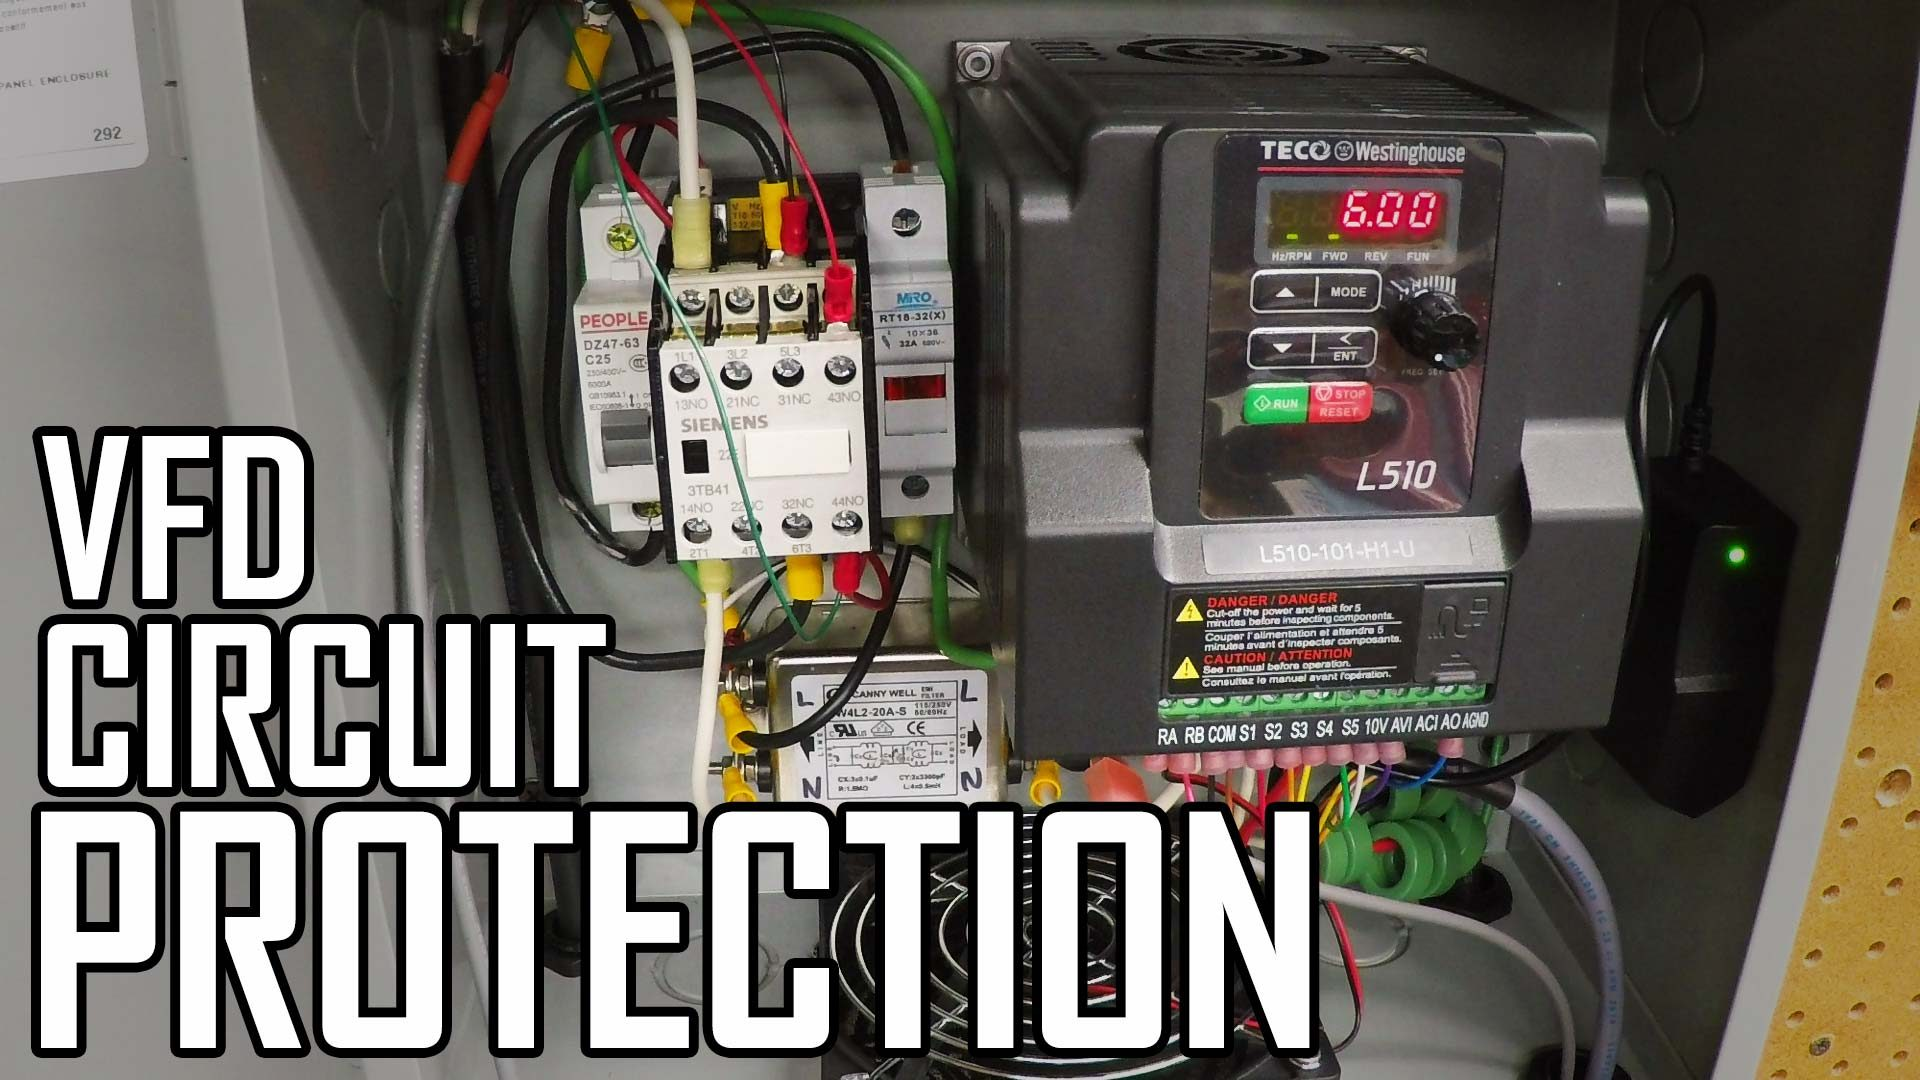 Lathe VFD 8: How to Wire Circuit Protection (Breaker and Fuse)